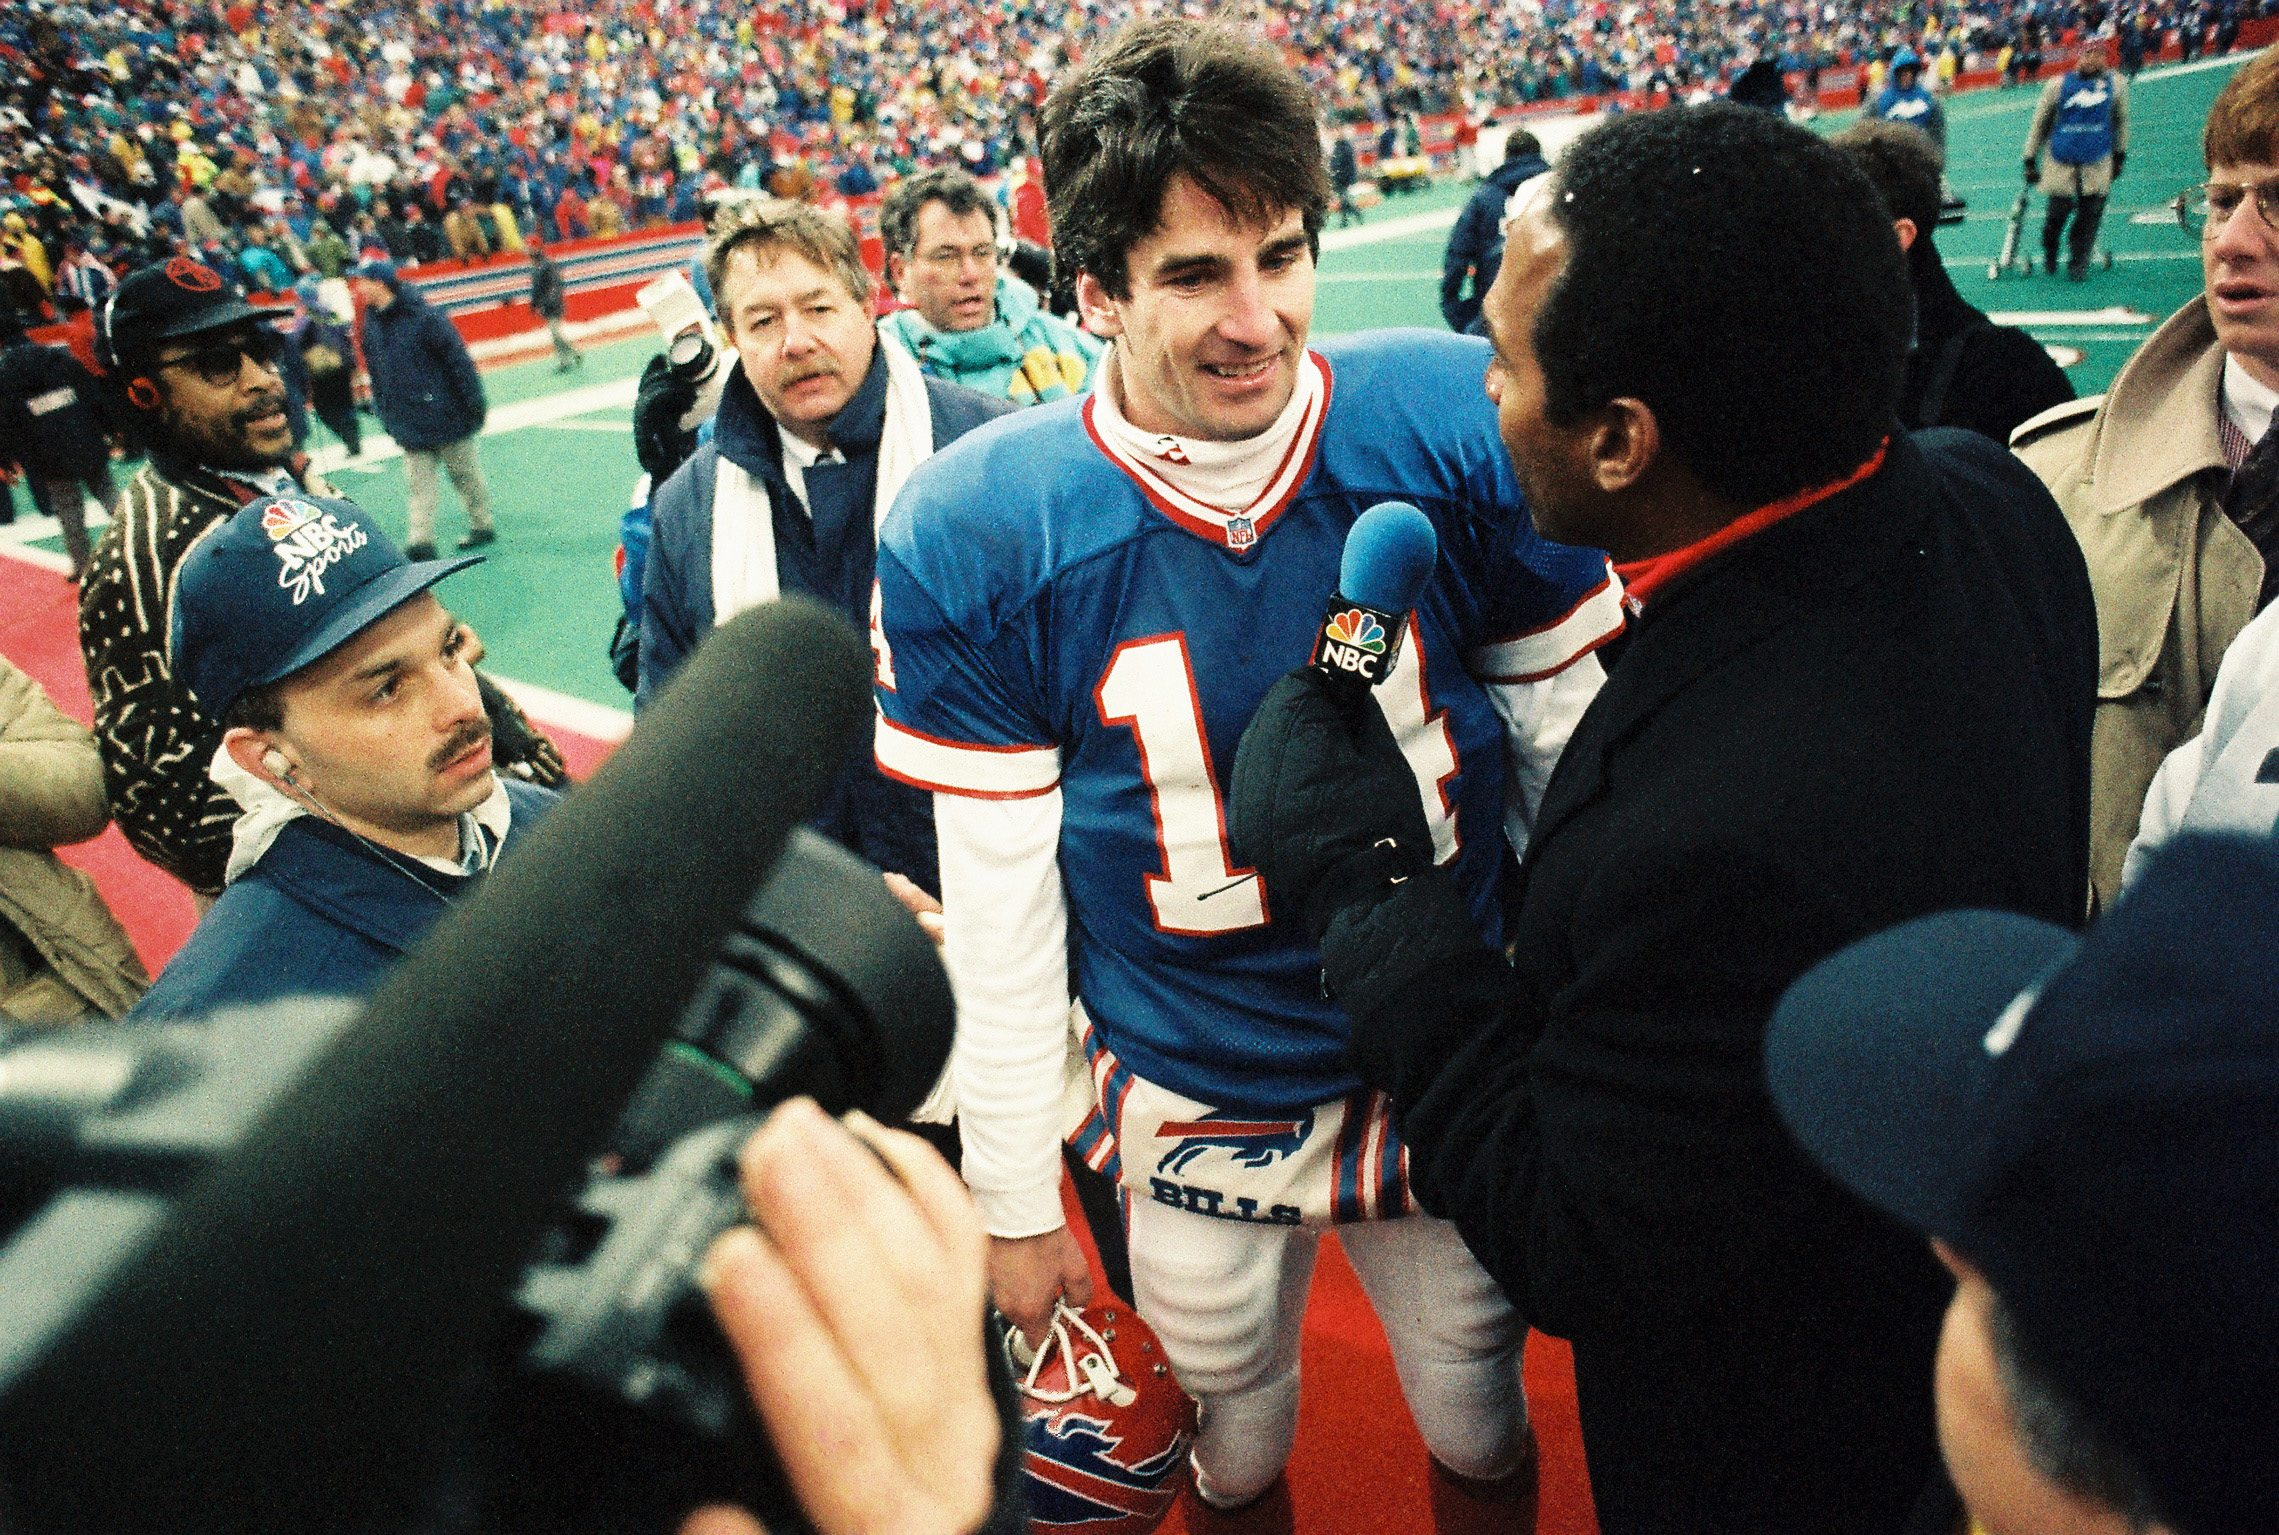 Frank Reich is interviewed by O.J. Simpson after the comeback victory against the Oilers. {Photo by James P. McCoy/Buffalo News}